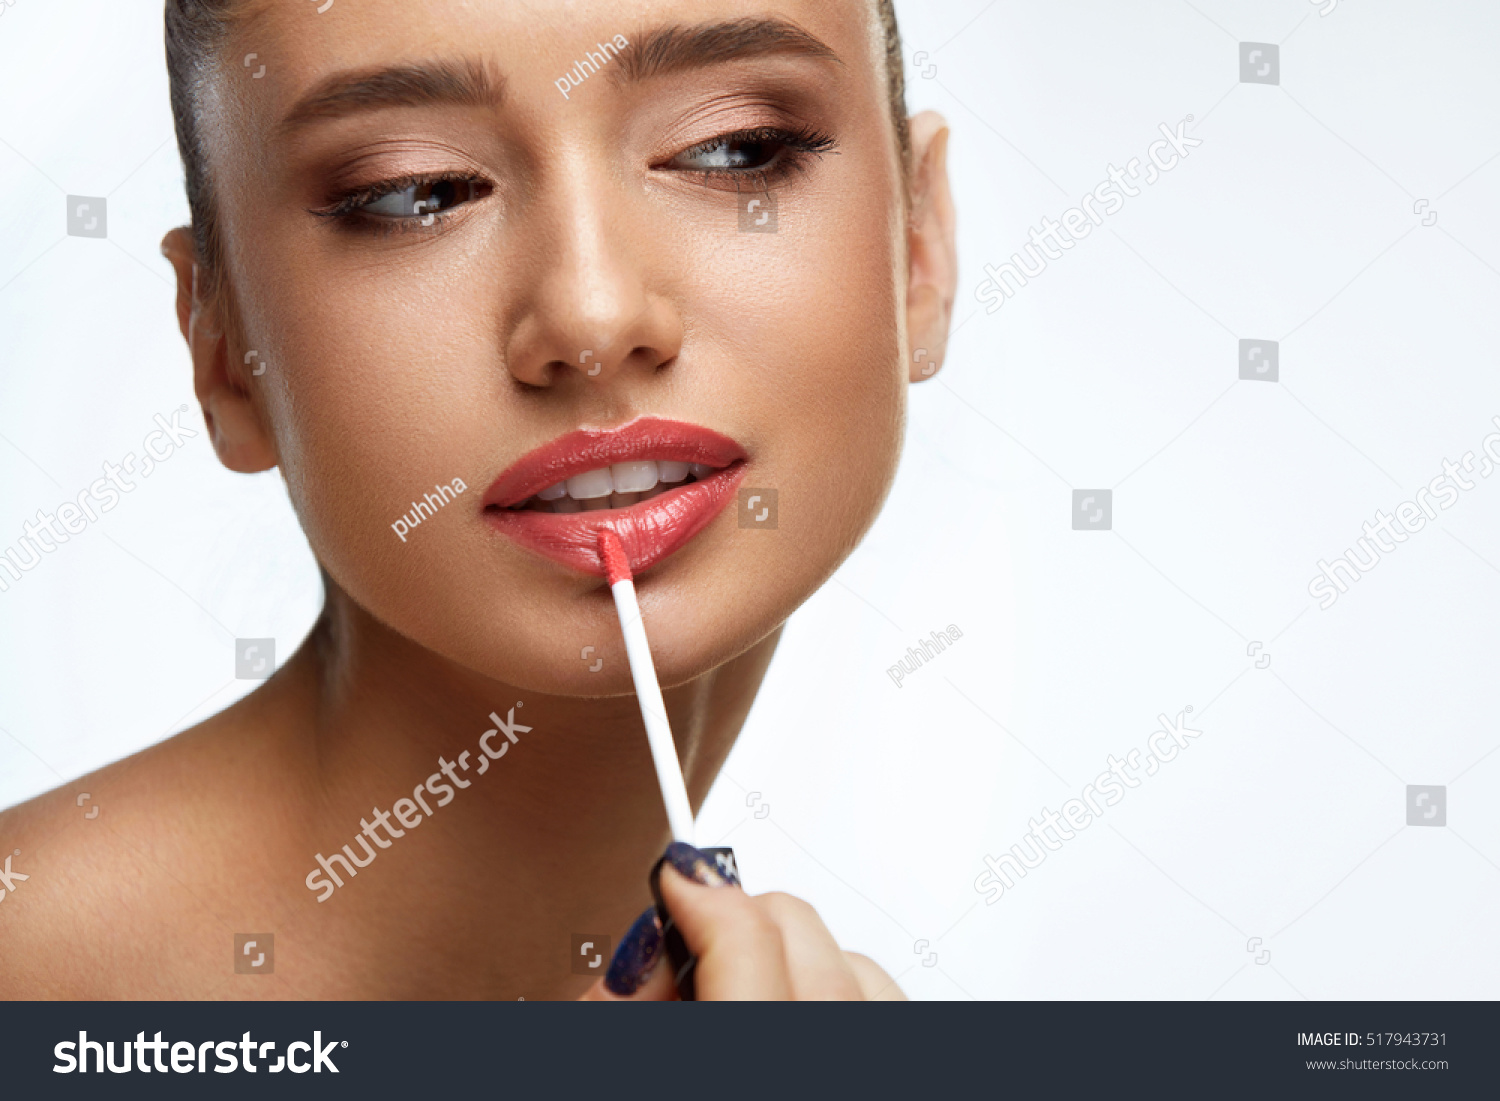 how to become a lip model